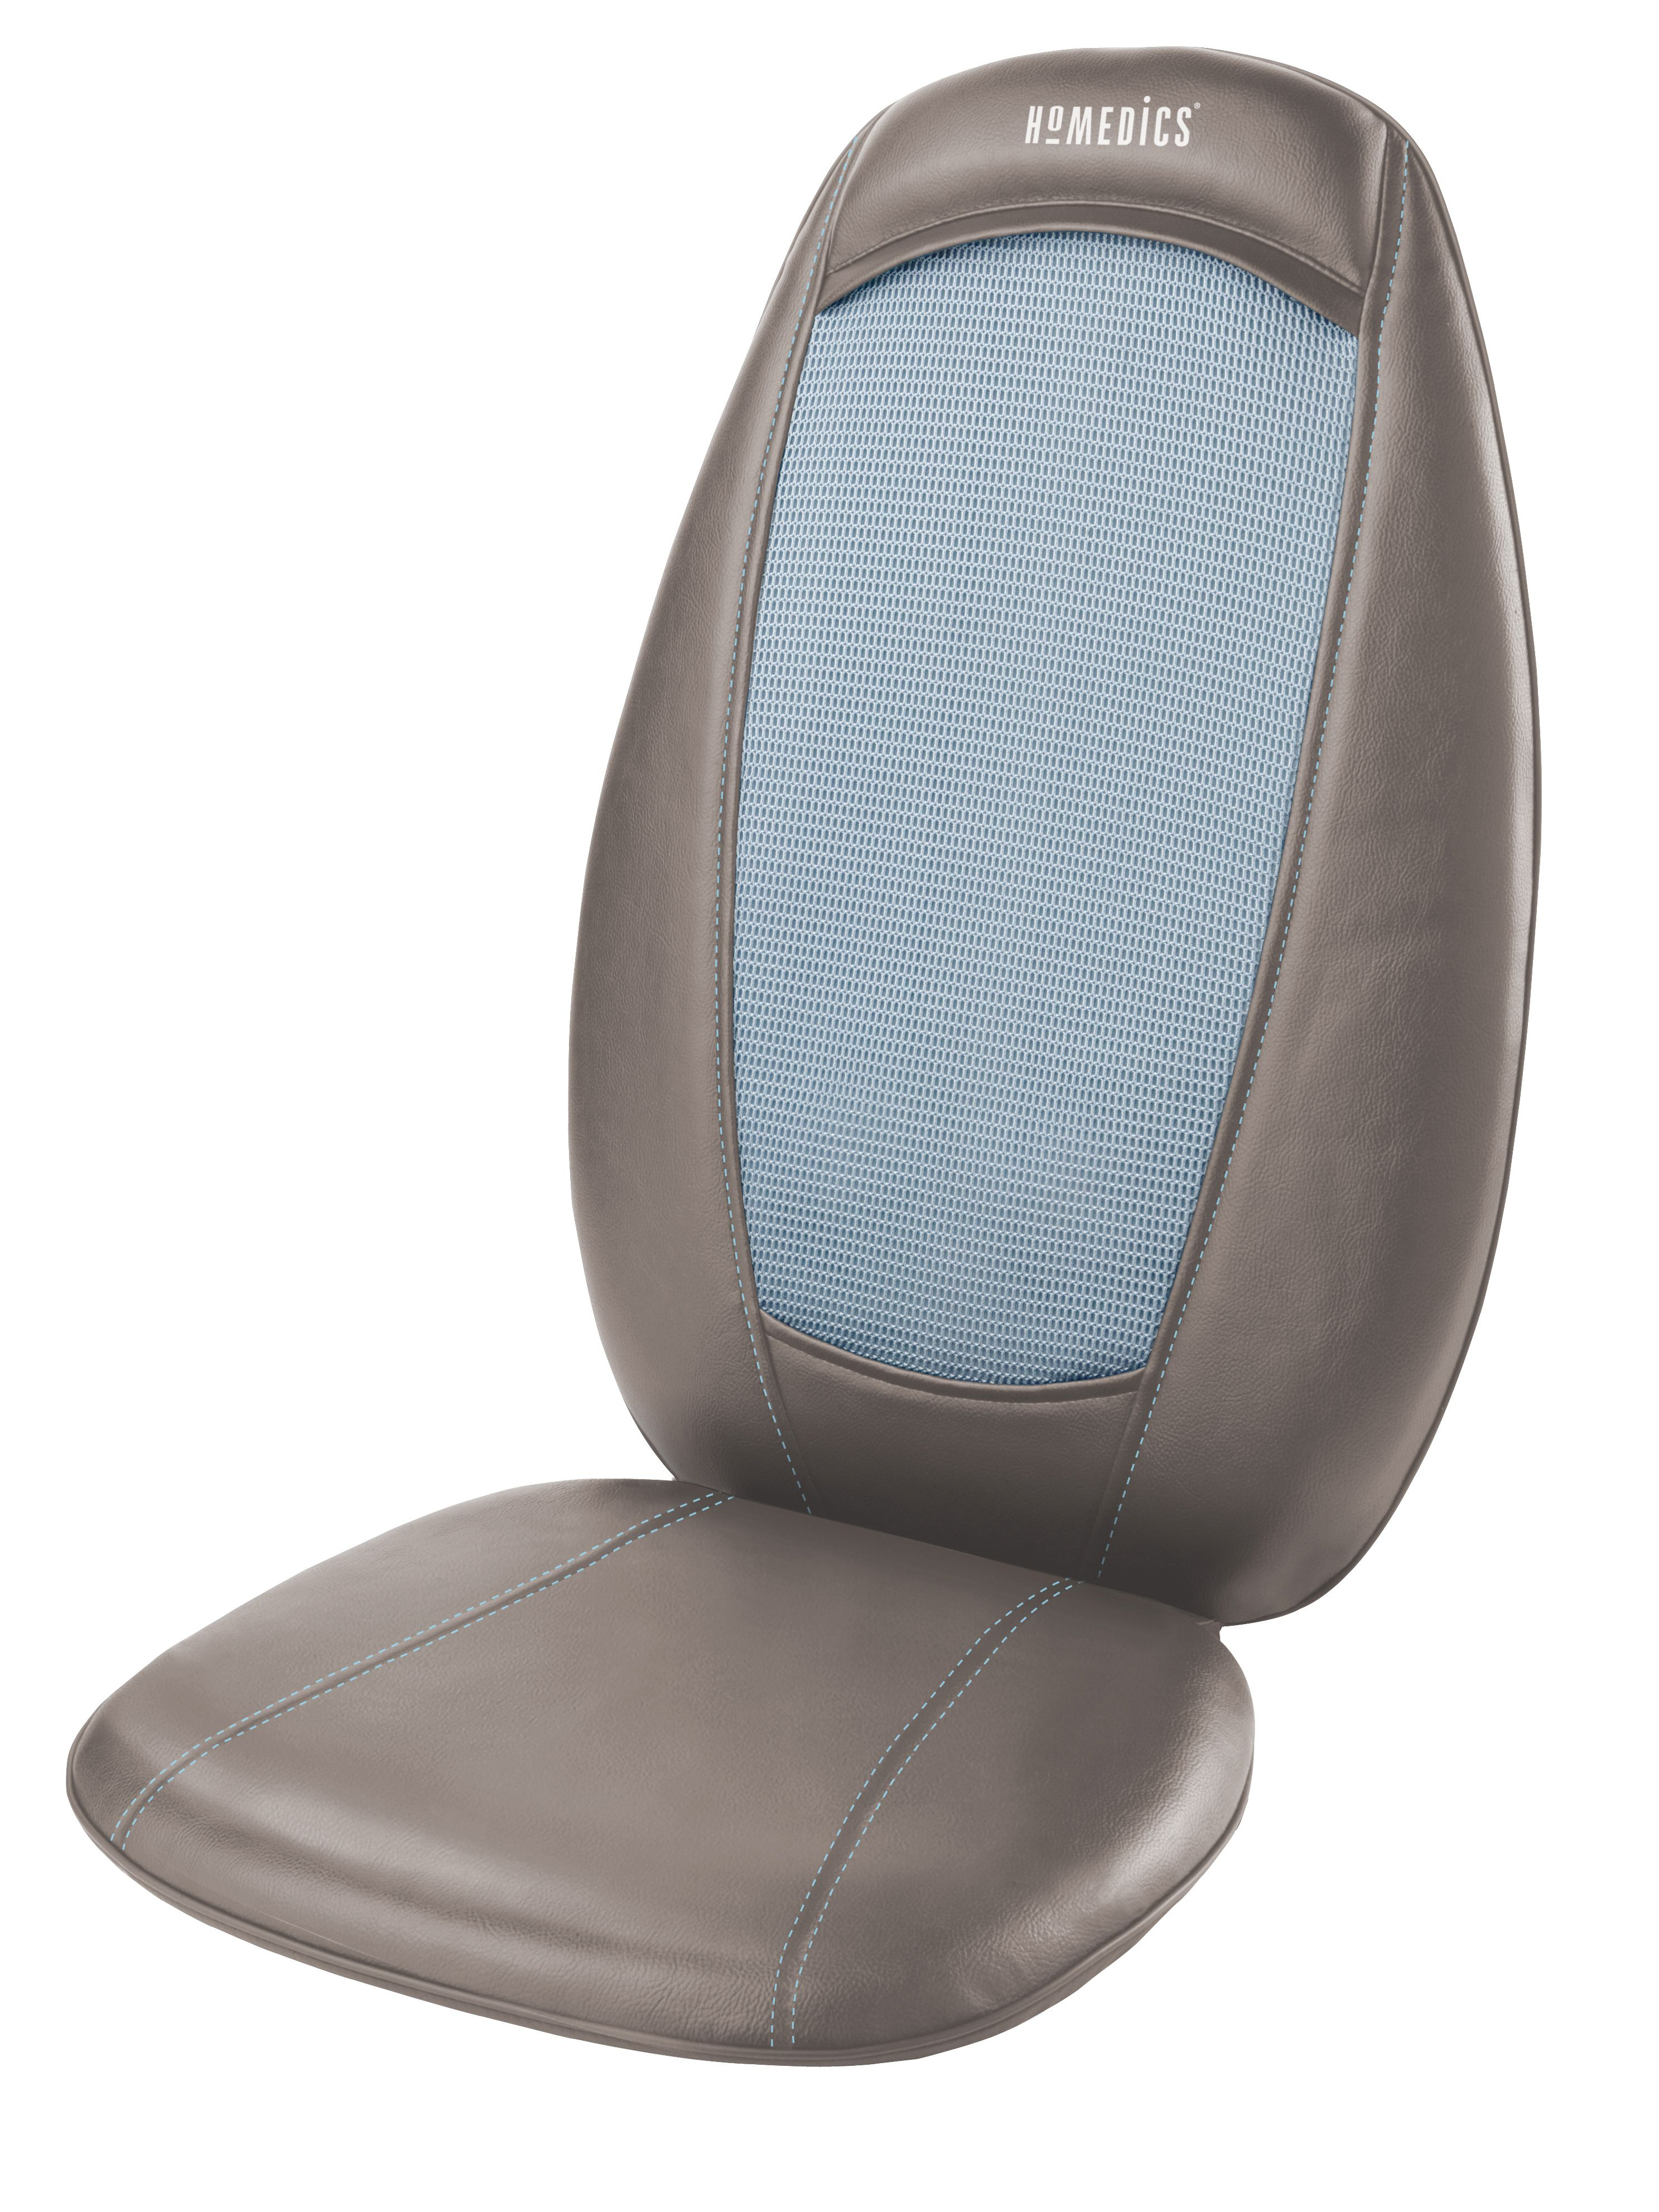 Shiatsu Massager with Heat SBM-215